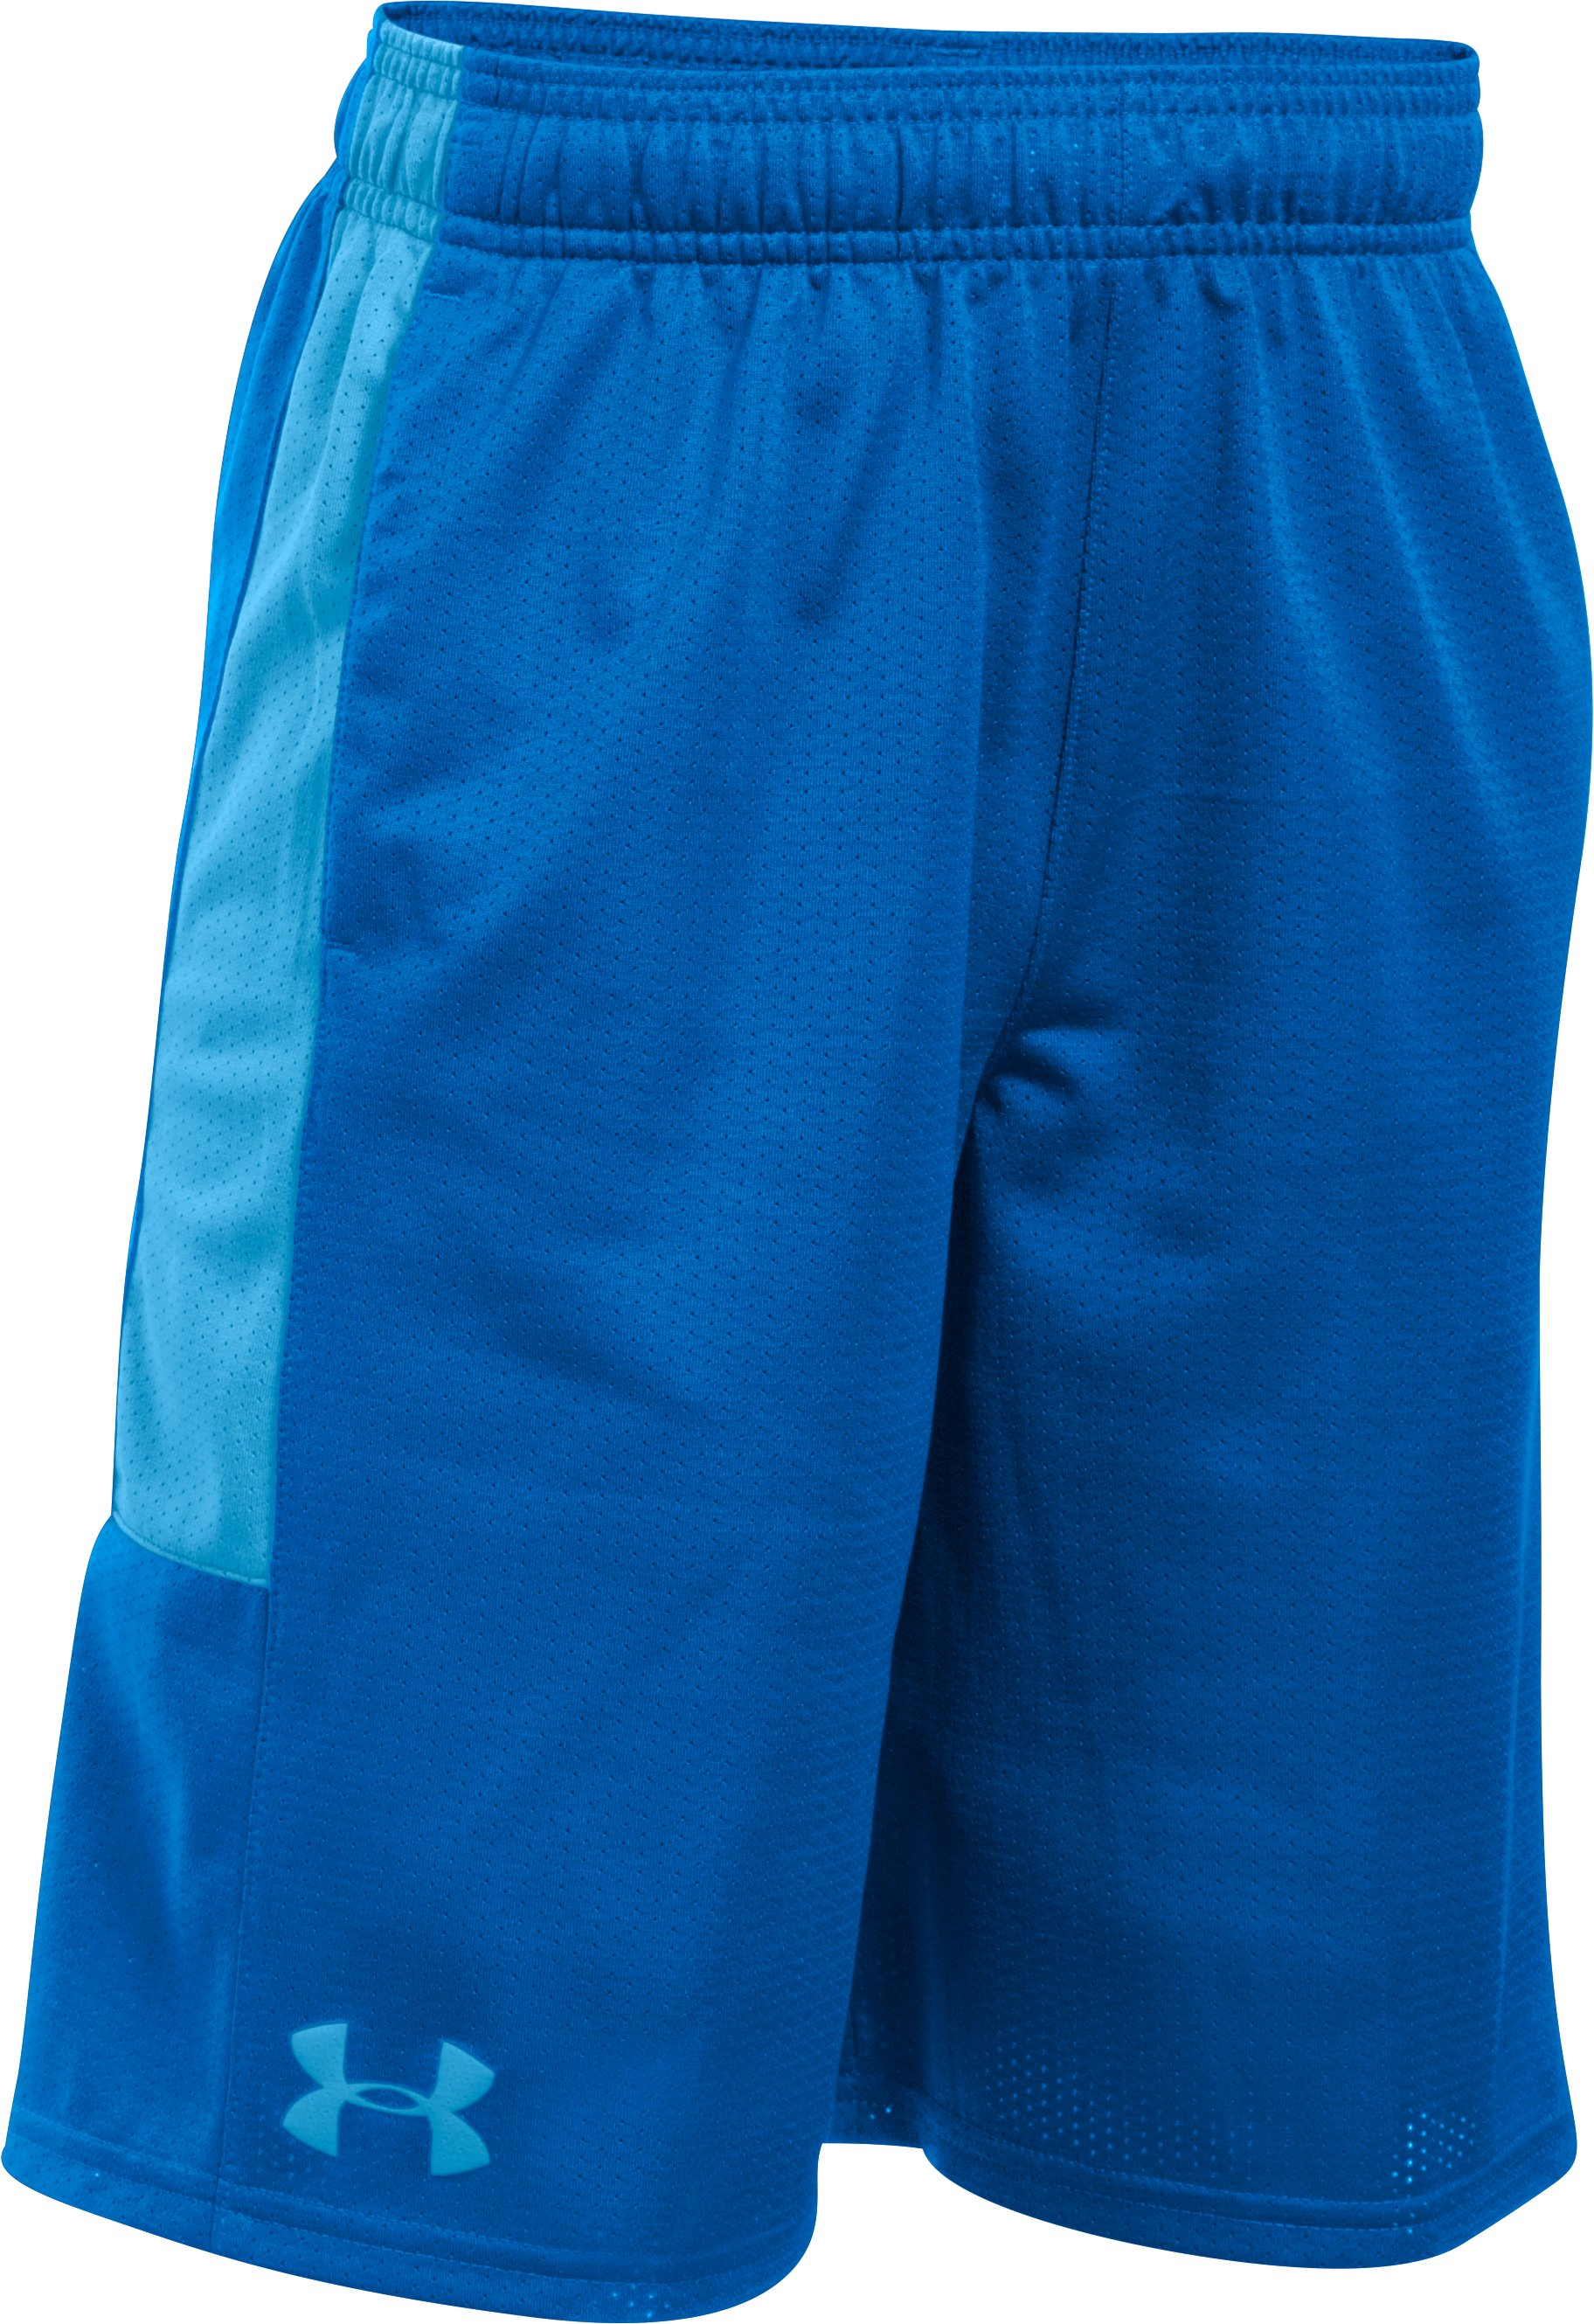 Boys' UA Instinct Mesh Shorts, ULTRA BLUE,